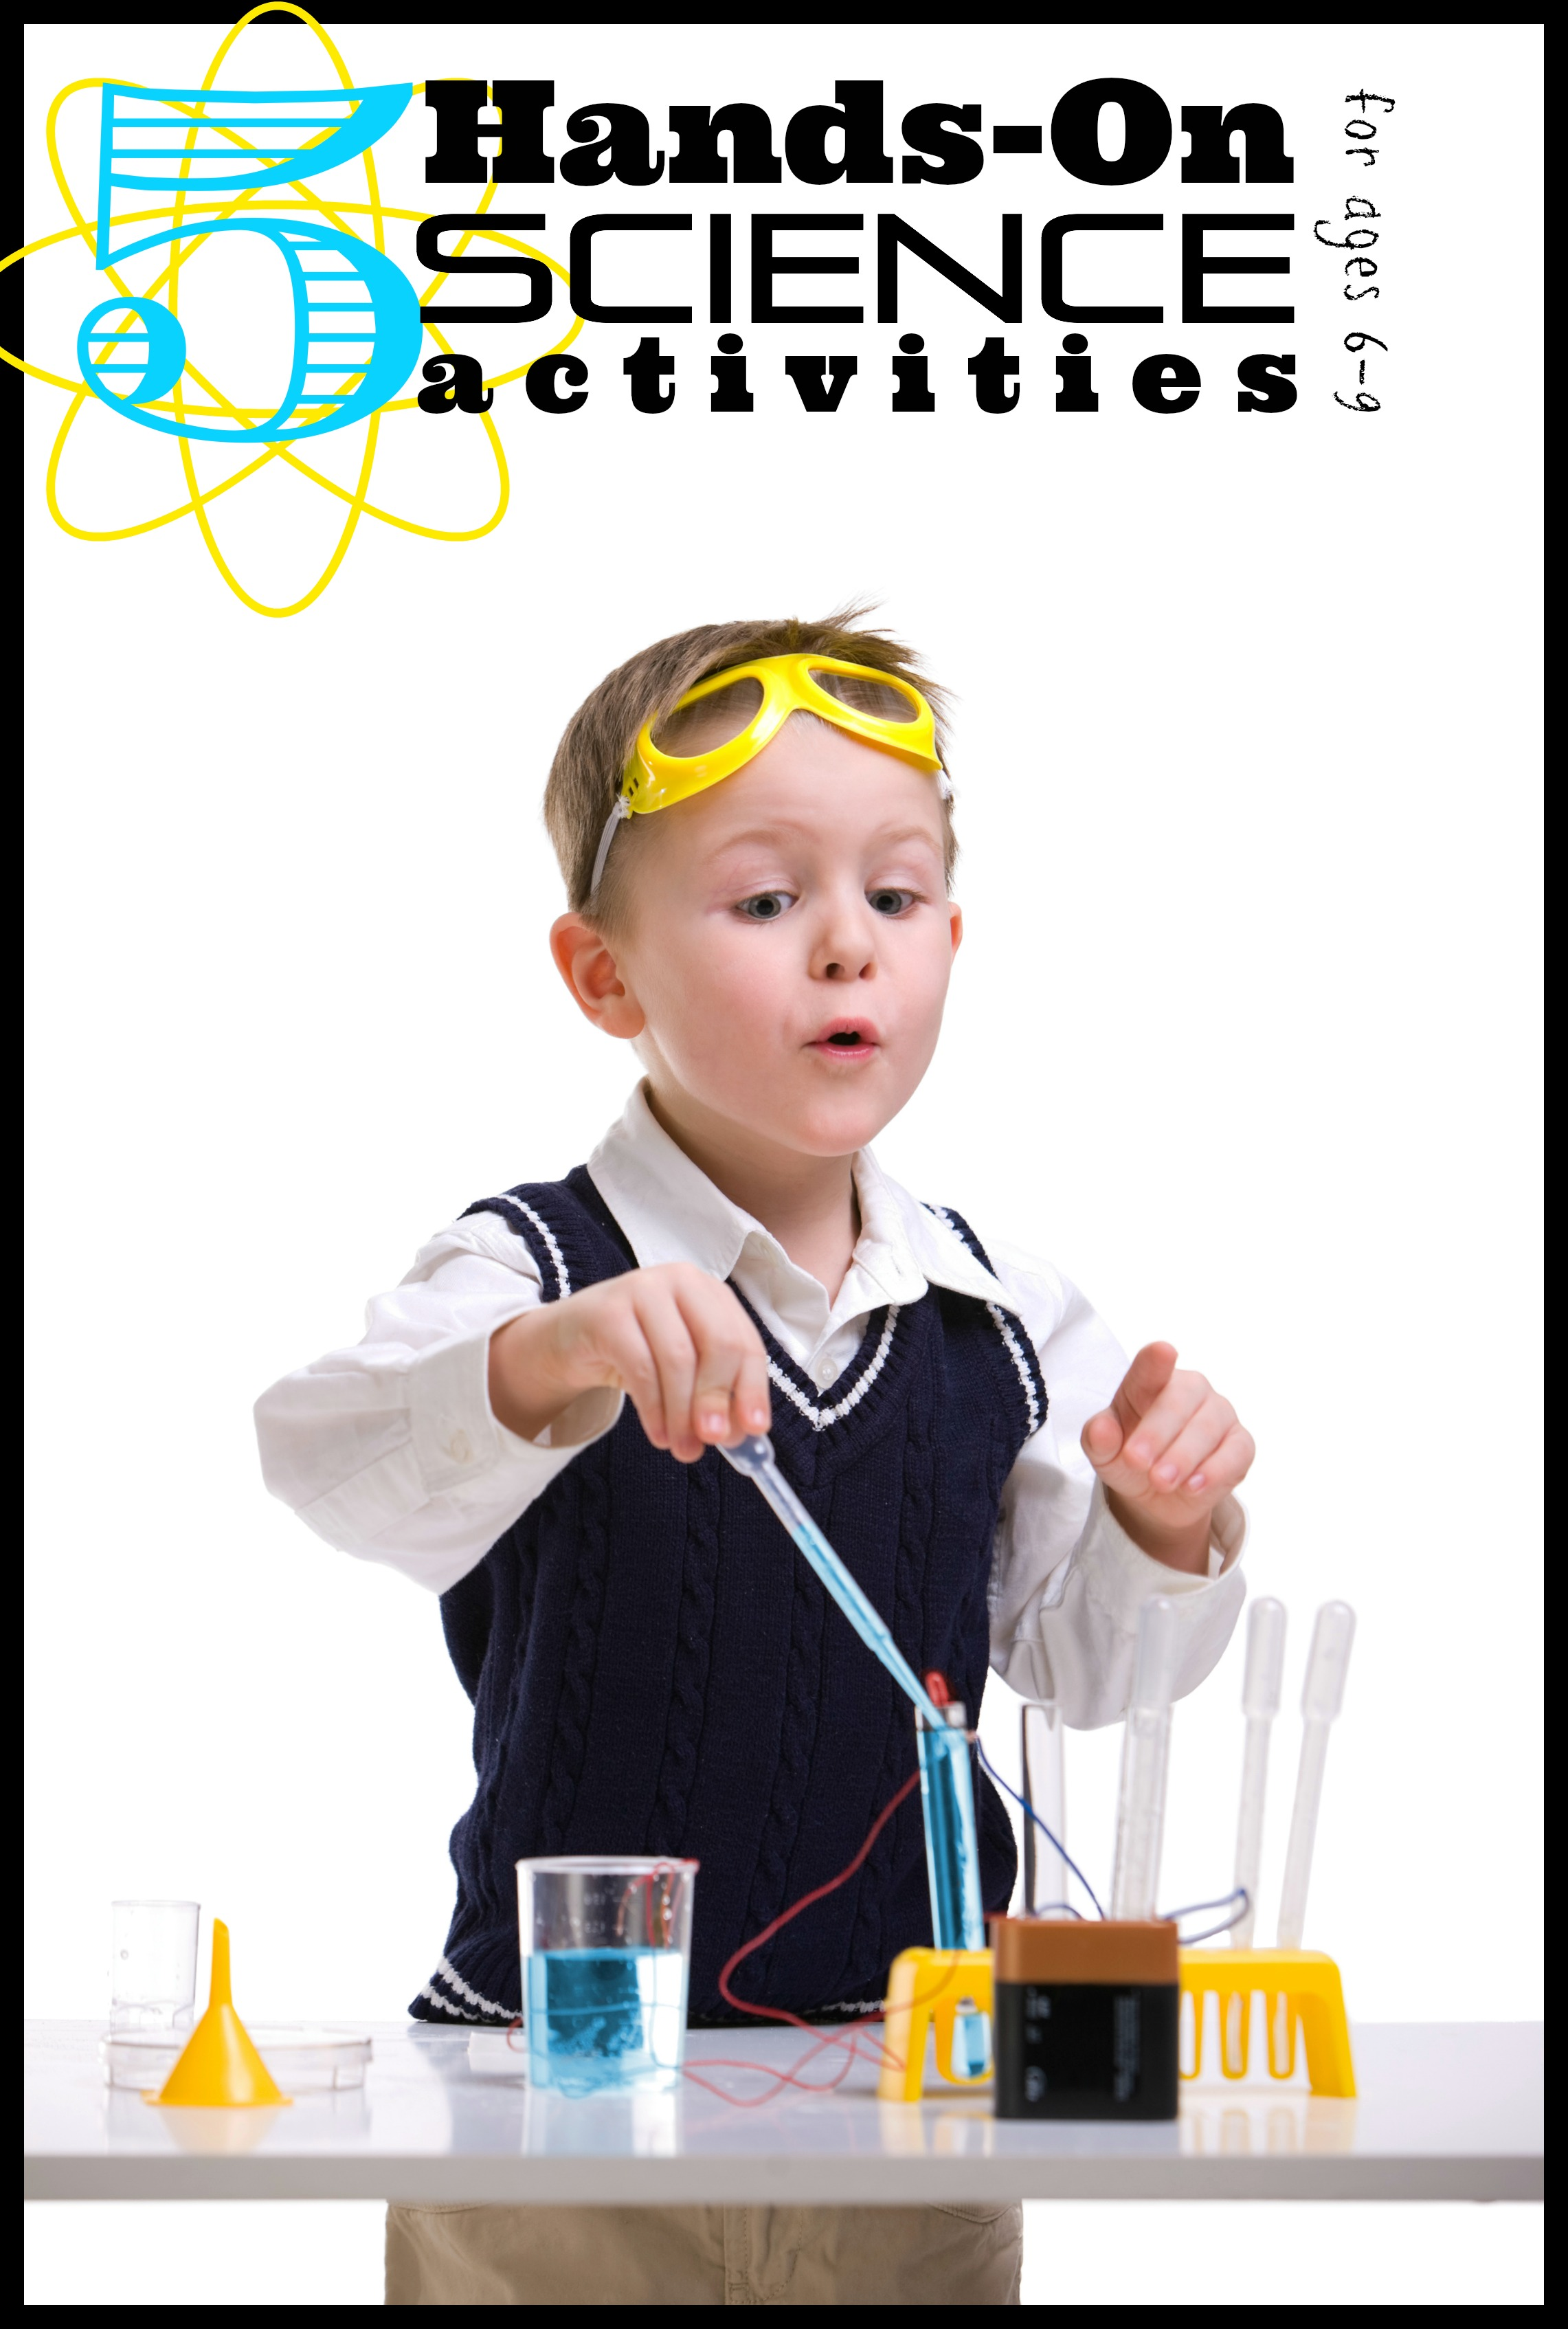 5 Hands On Science Activities For 6 9 Year Olds